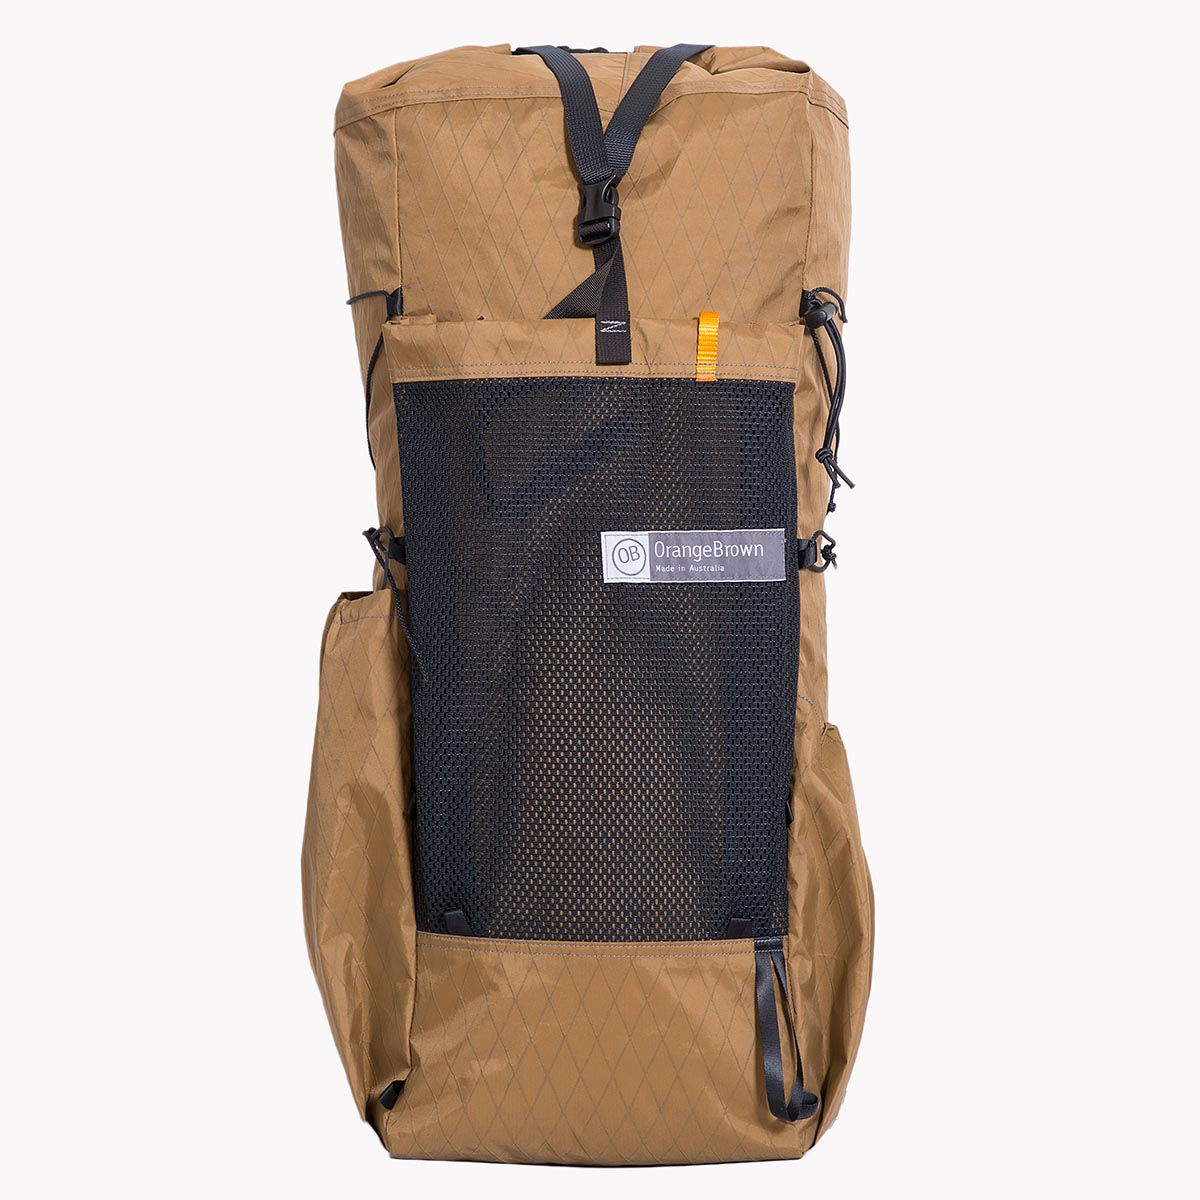 Australian made backpack for hiking and bushwalking. With the use of X-Pac materials this pack is very light but still robust. It has three external pockets and is shown in colour coyote.